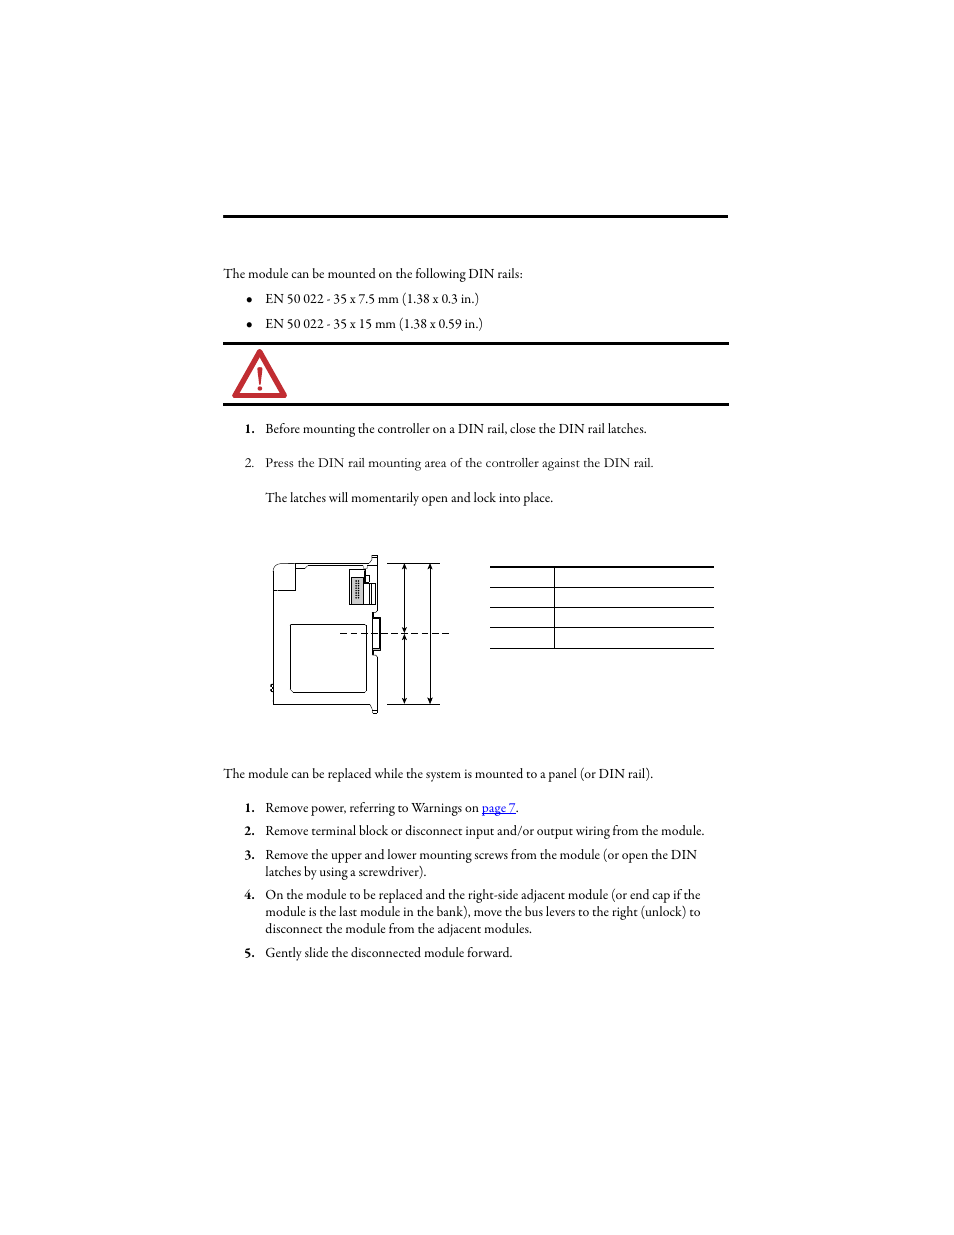 din rail mounting replace the module within a system rockwell rh manualsdir com Instruction Manual Example Instruction Manual